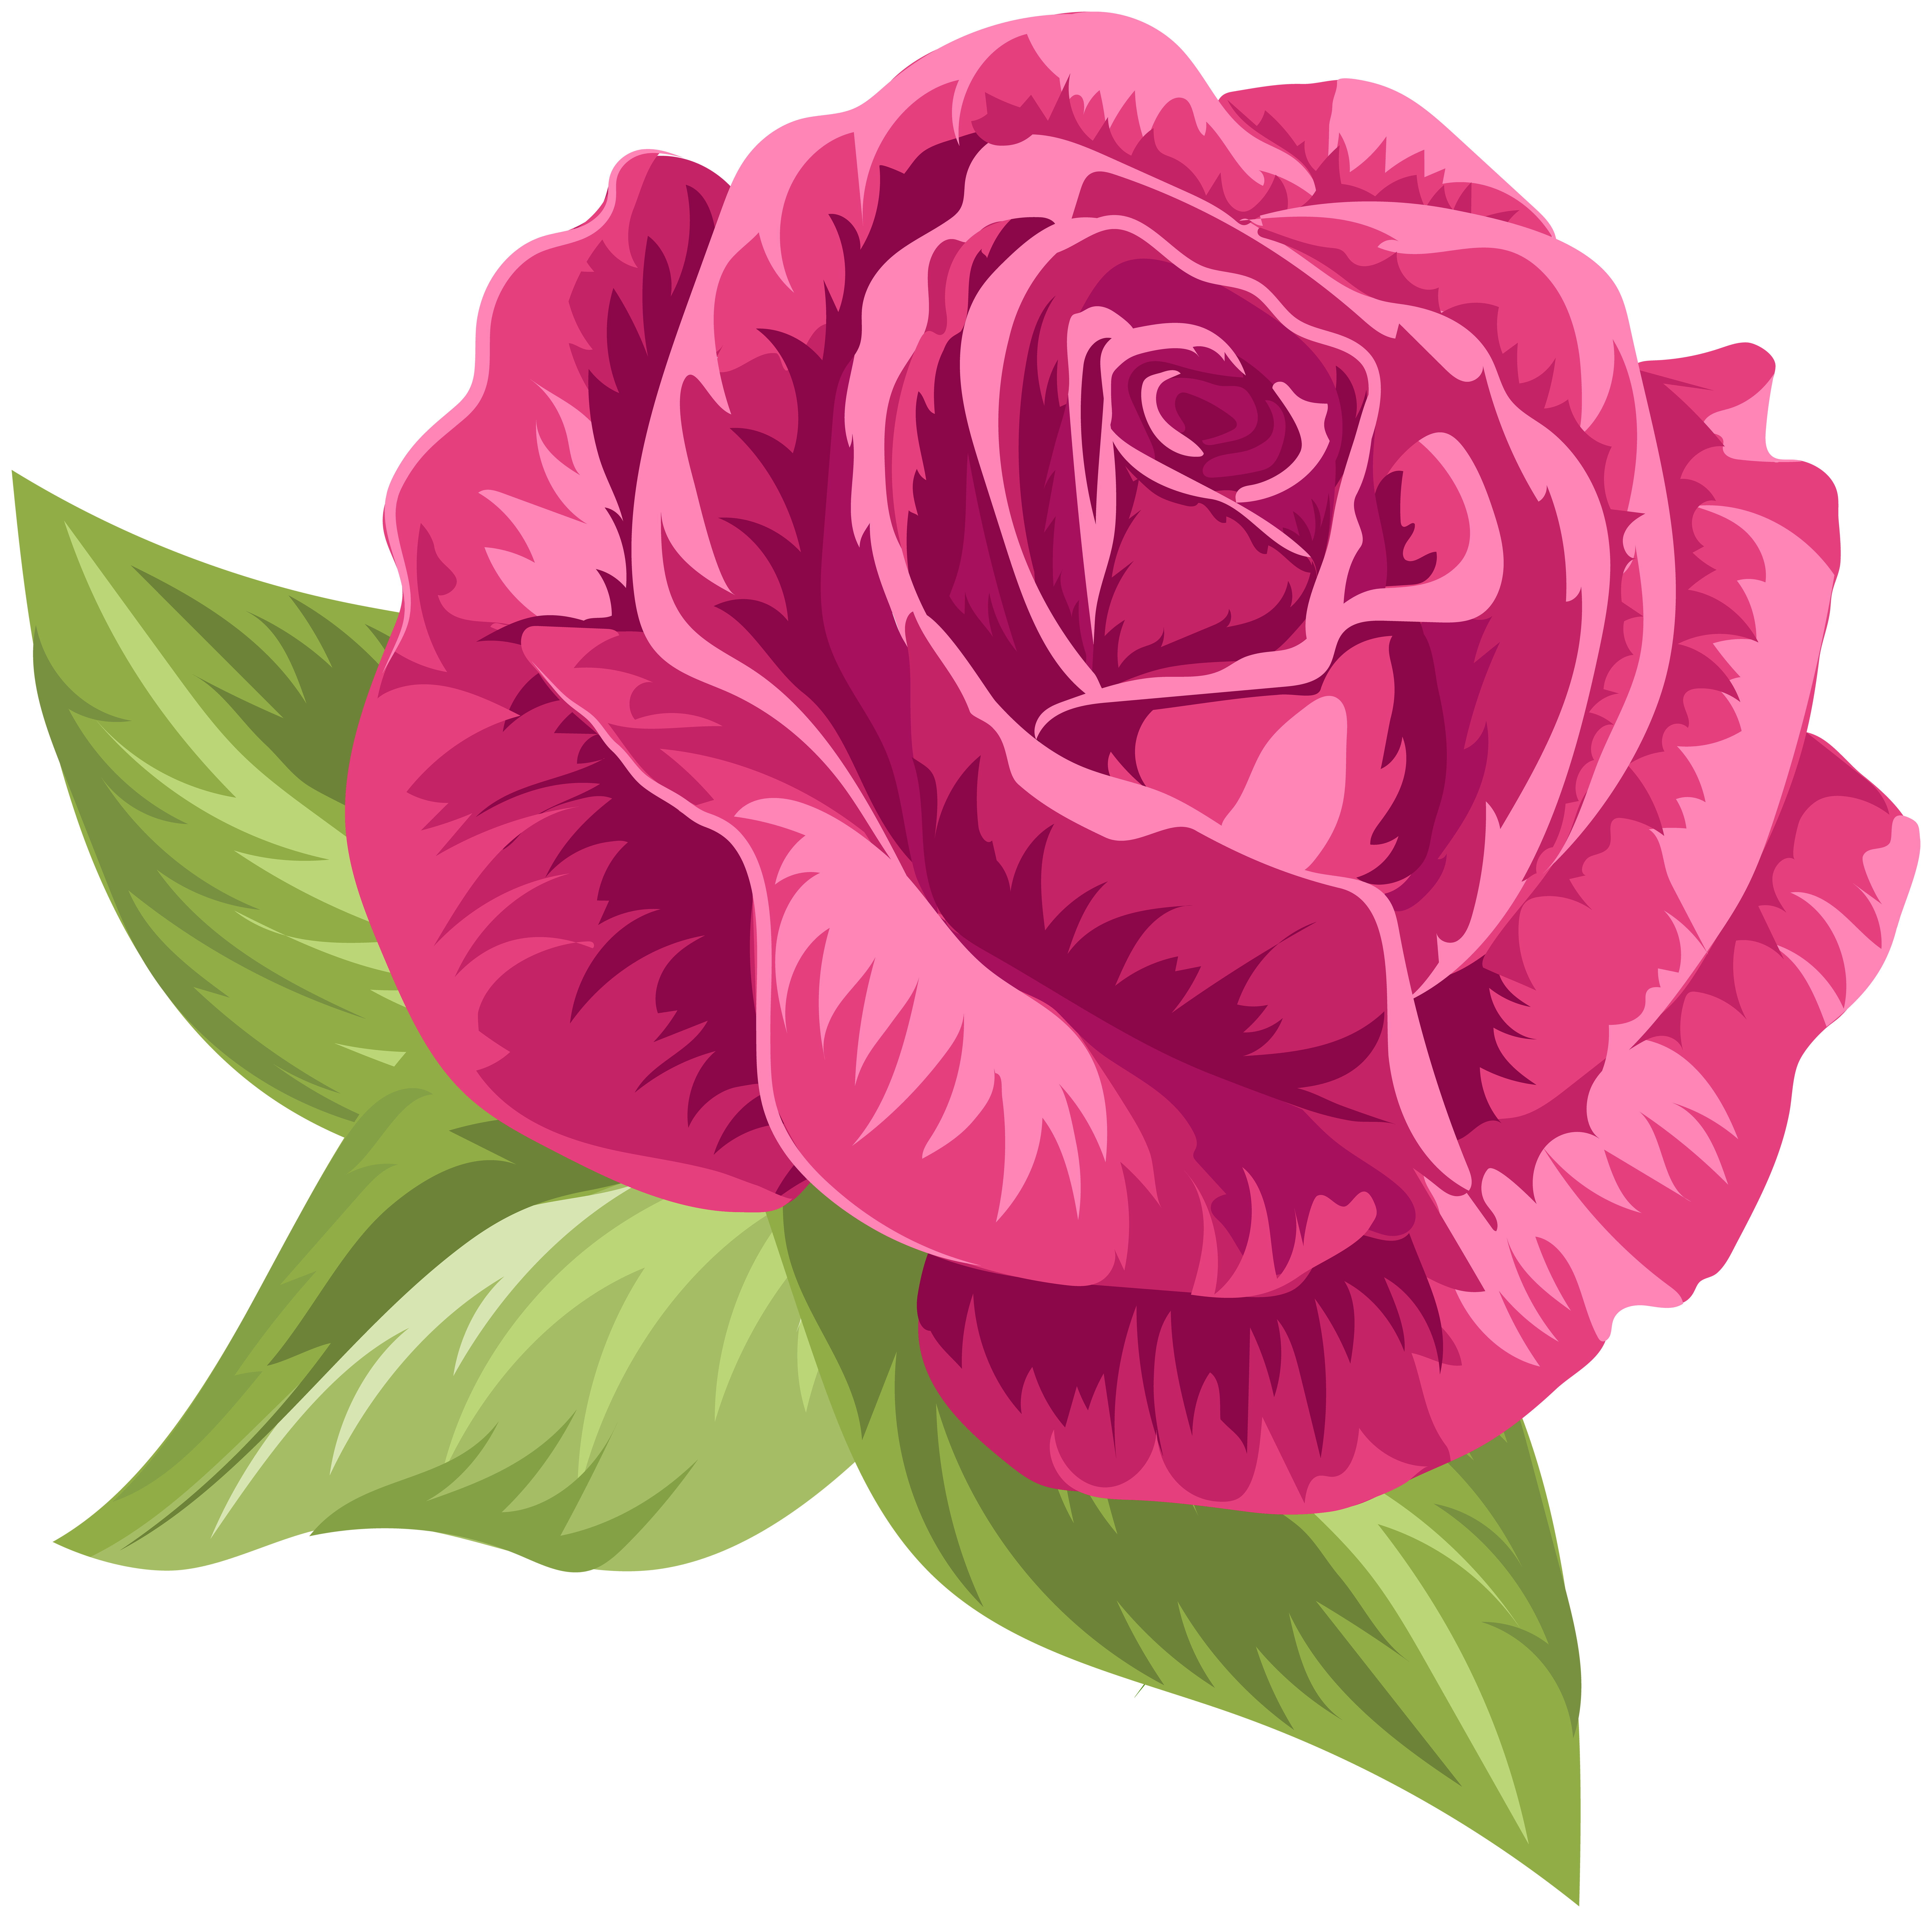 Pink Vintage Rose Png Clip Art Gallery Yopriceville High Quality Images And Transparent Png Free Clipart Vintage Drawing Clip Art Floral Art